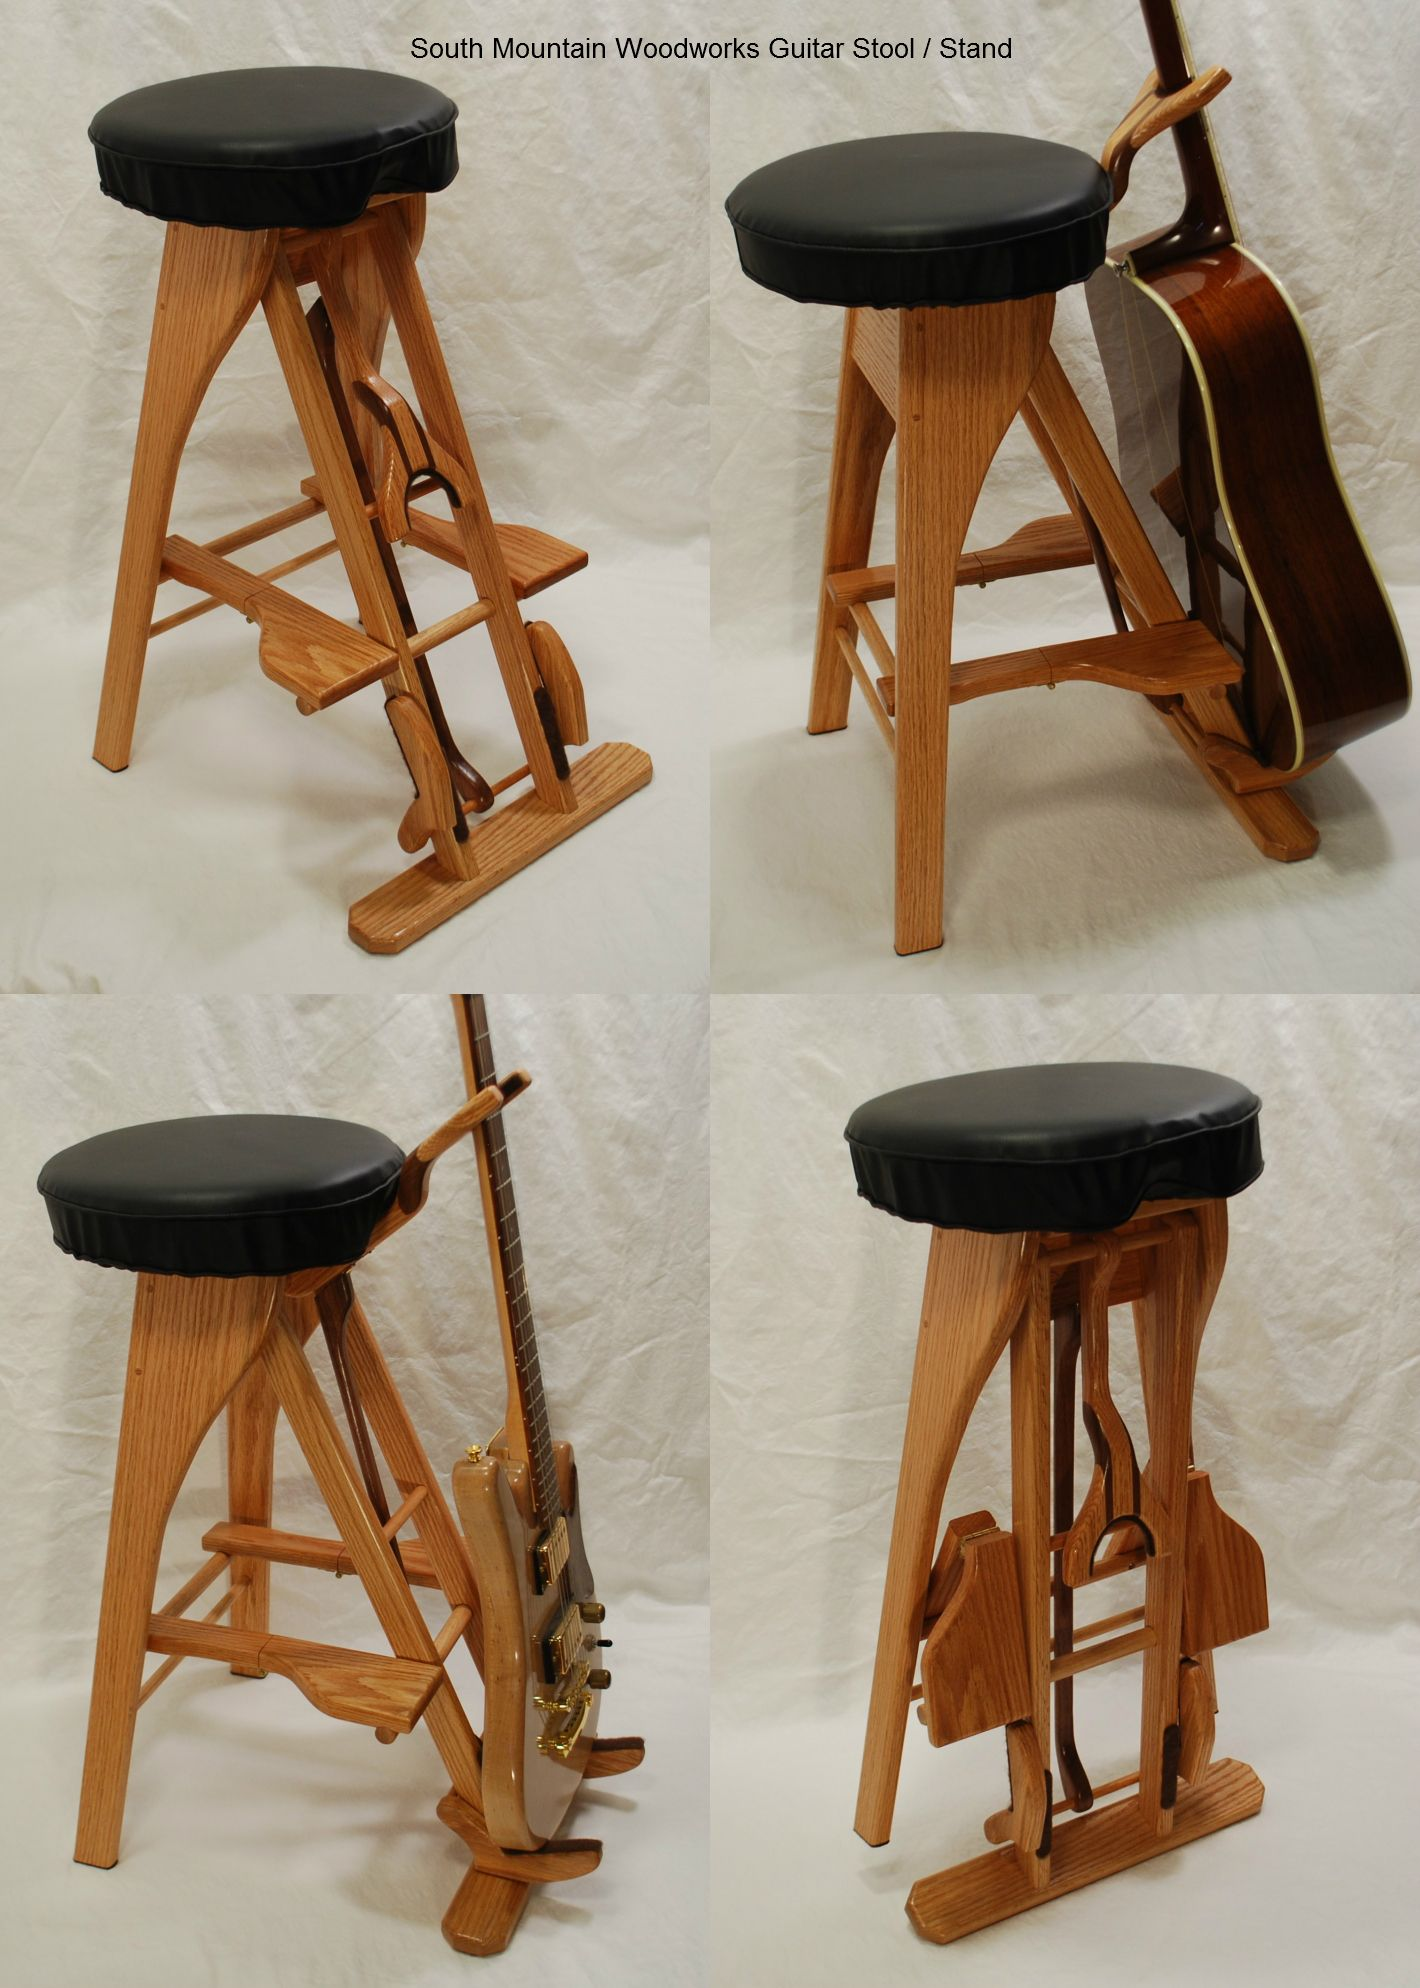 Fine Guitar Stool Stand By South Mountain Woodworks Wood Ocoug Best Dining Table And Chair Ideas Images Ocougorg